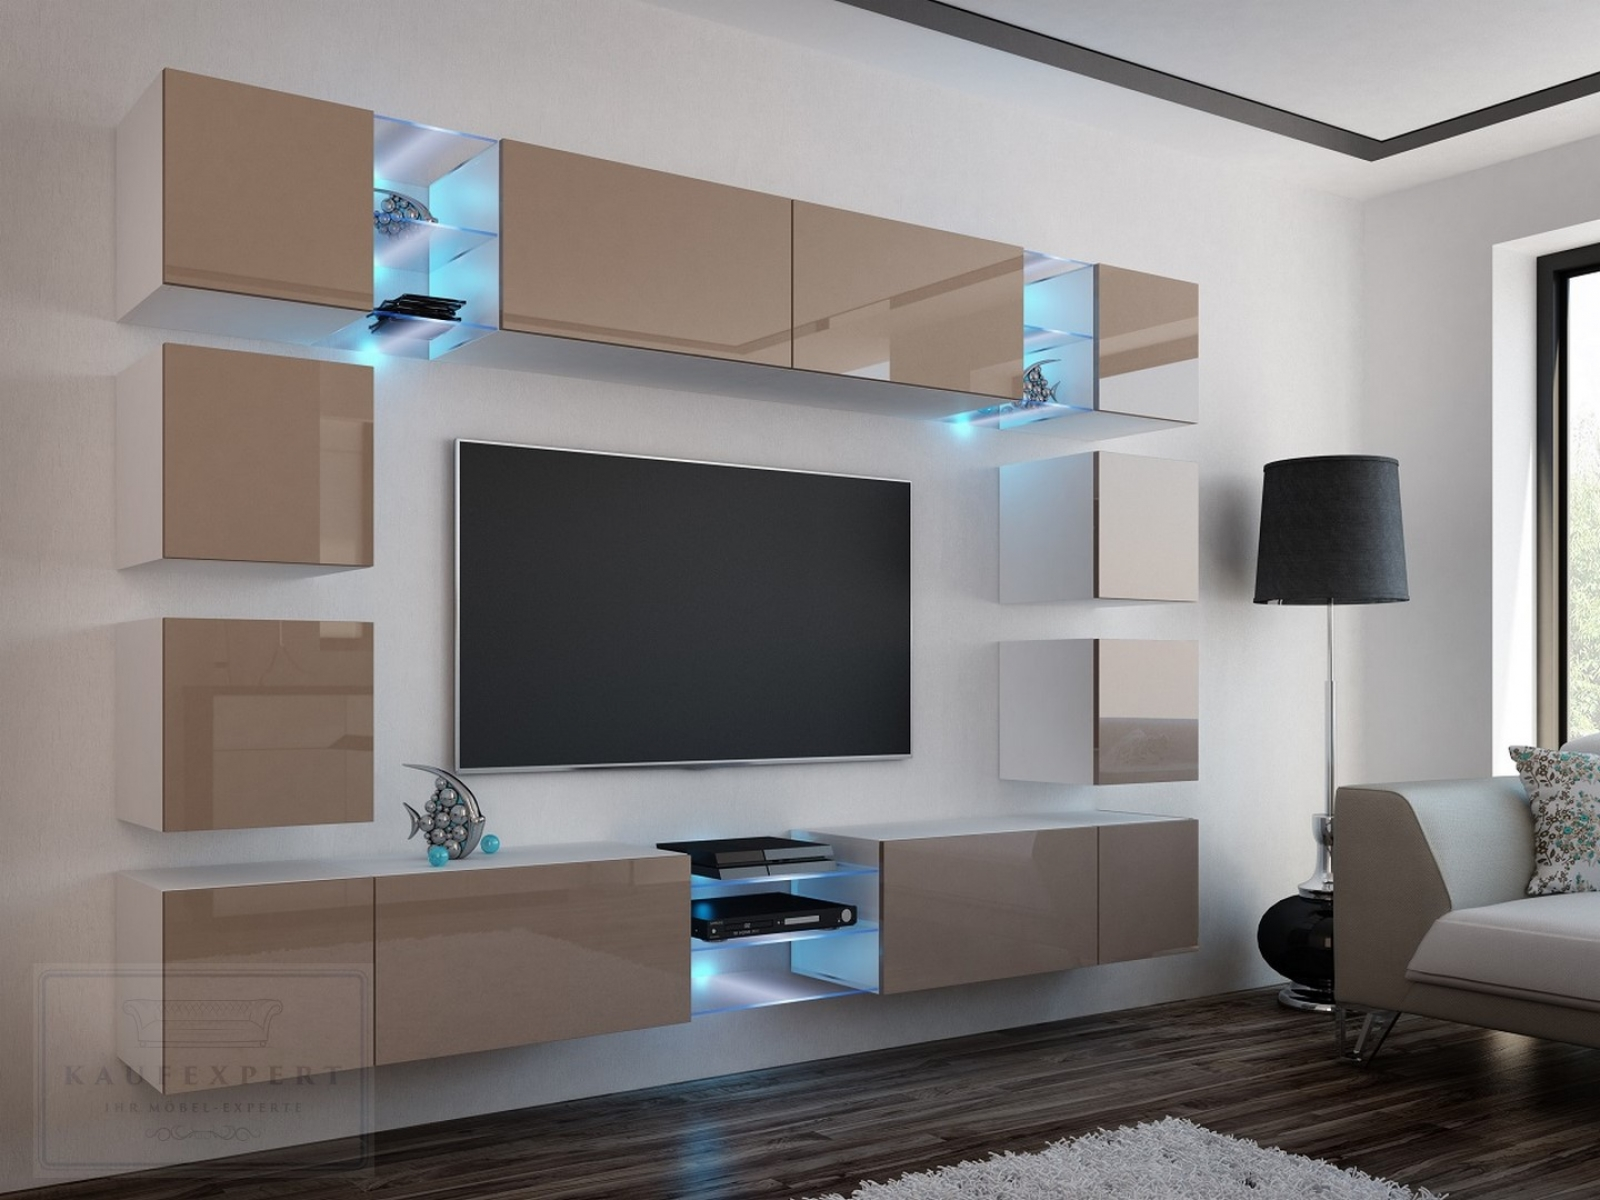 kaufexpert wohnwand edge cappuccino hochglanz wei mediawand medienwand design modern led. Black Bedroom Furniture Sets. Home Design Ideas